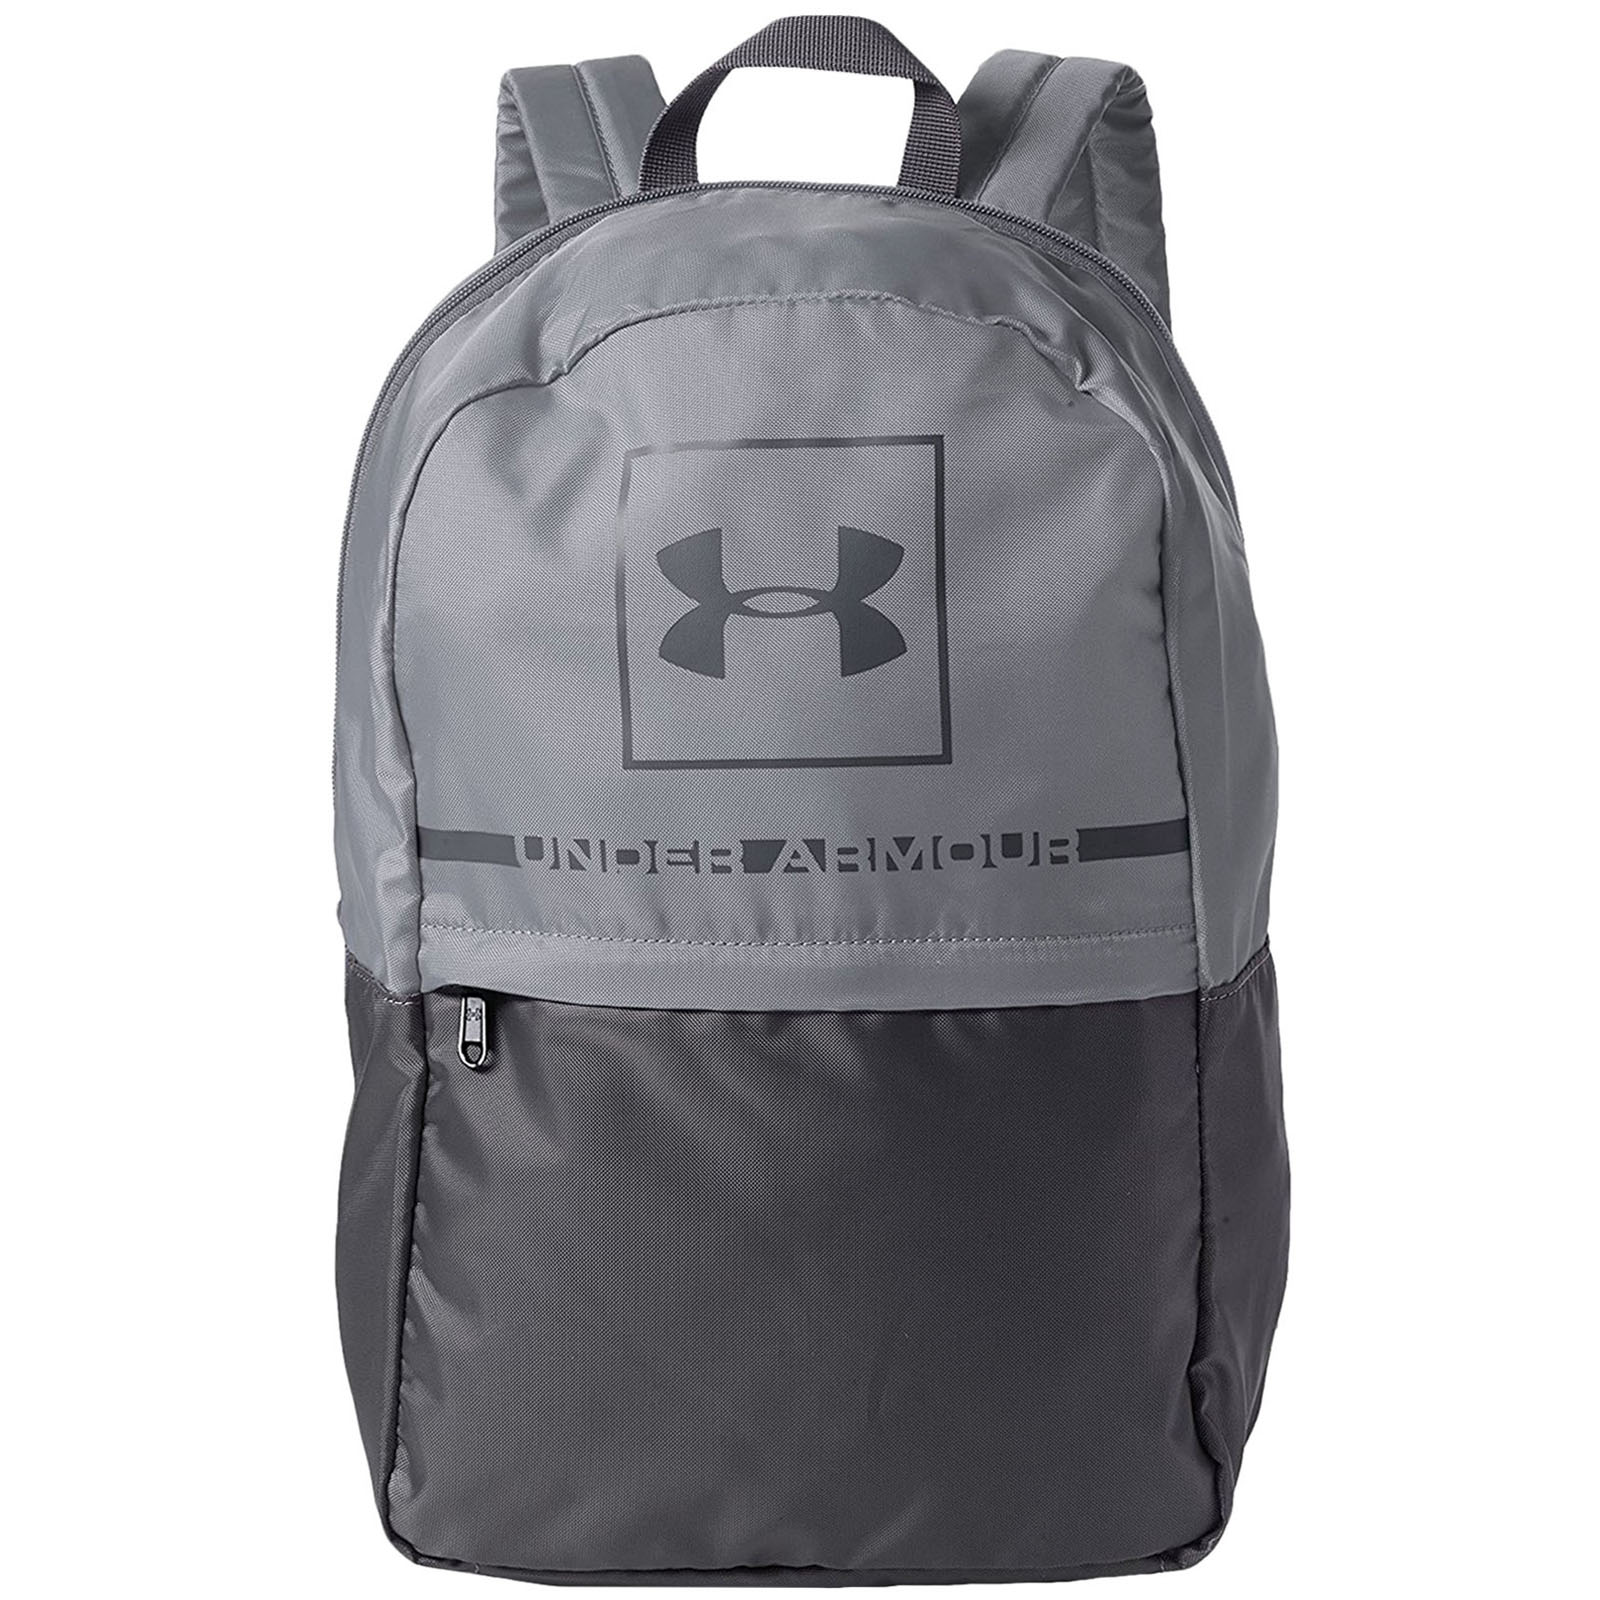 Under Armour UA Project 5 Unisex School College Travel Backpack ... 8e2ae7890fd71